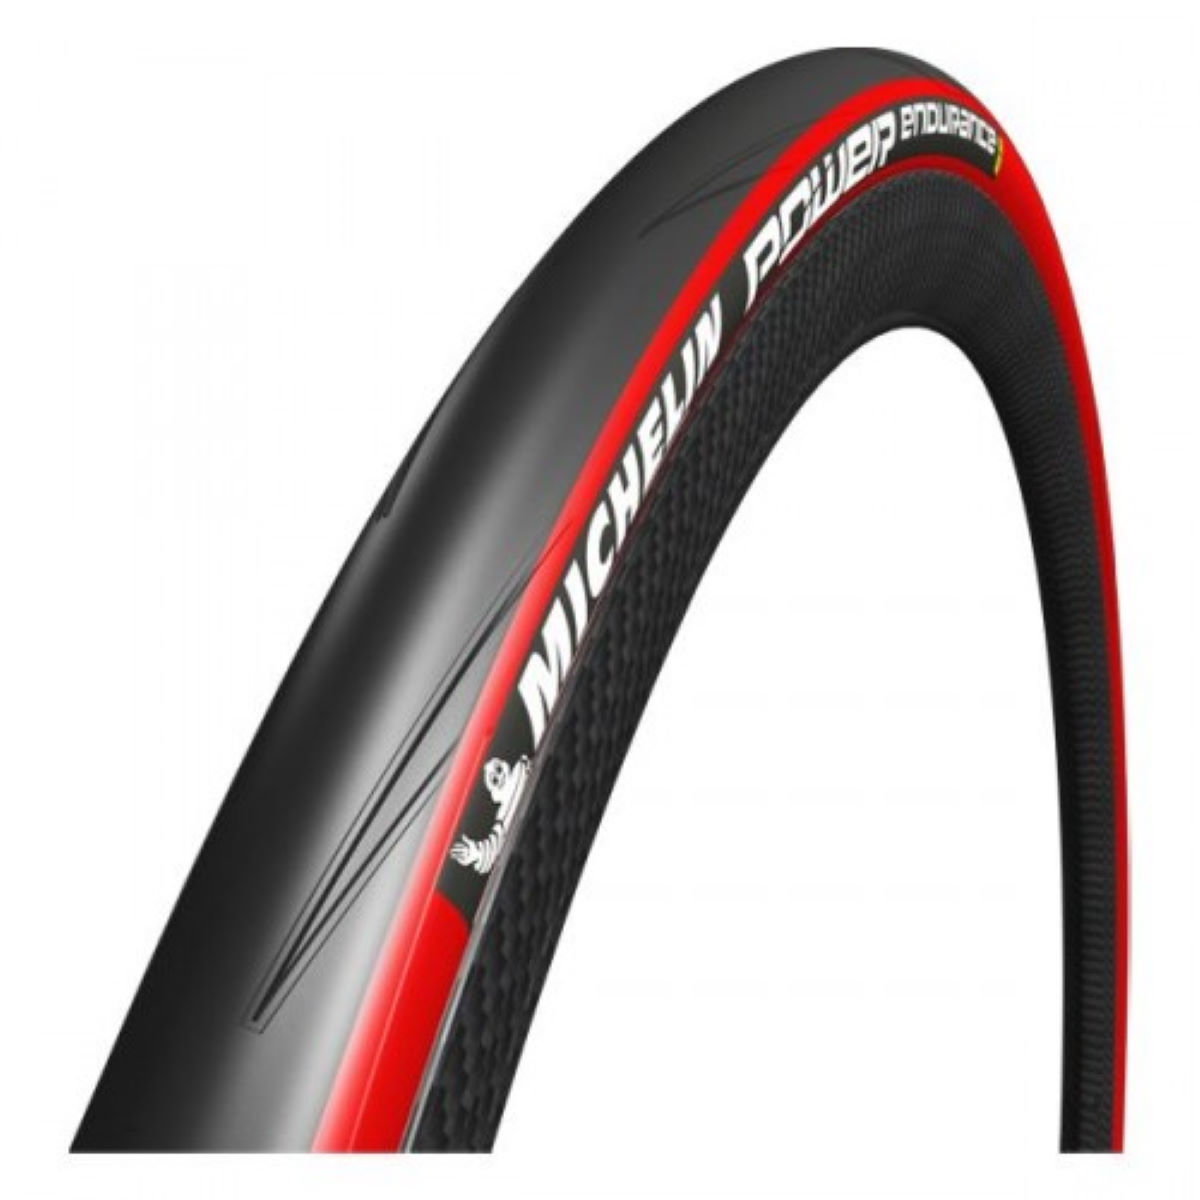 Pneu souple de route Michelin Power Endurance (700 x 23 c) - Rouge